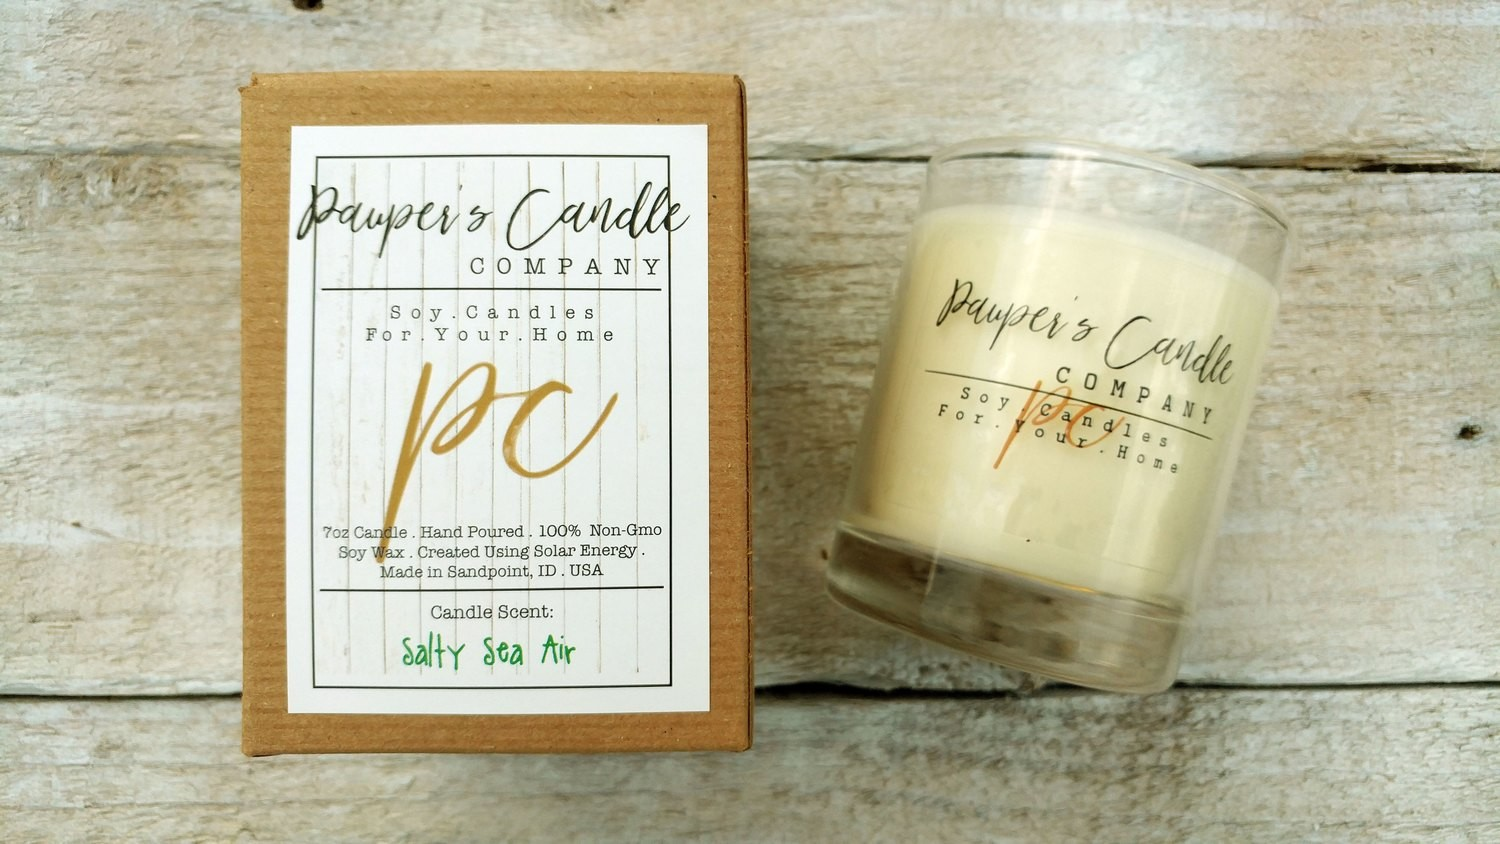 Enjoy Our Every Day Soy Candles